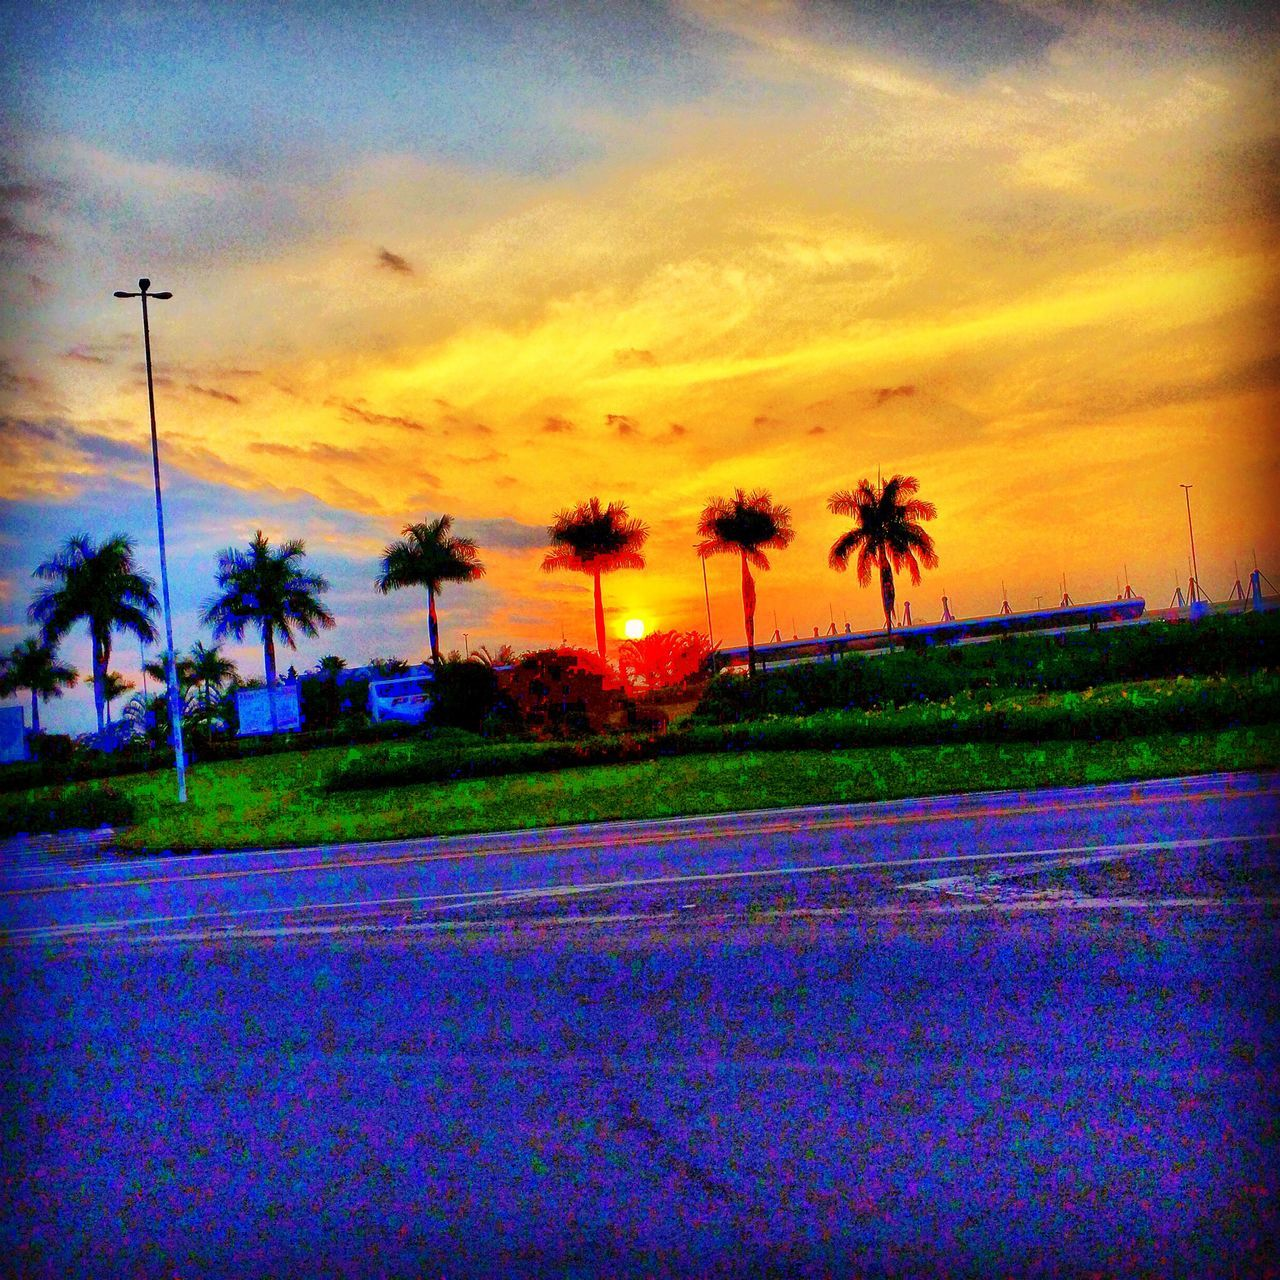 sunset, sky, cloud - sky, scenics, beauty in nature, palm tree, nature, orange color, tranquility, tree, tranquil scene, landscape, outdoors, no people, silhouette, sun, field, road, grass, day